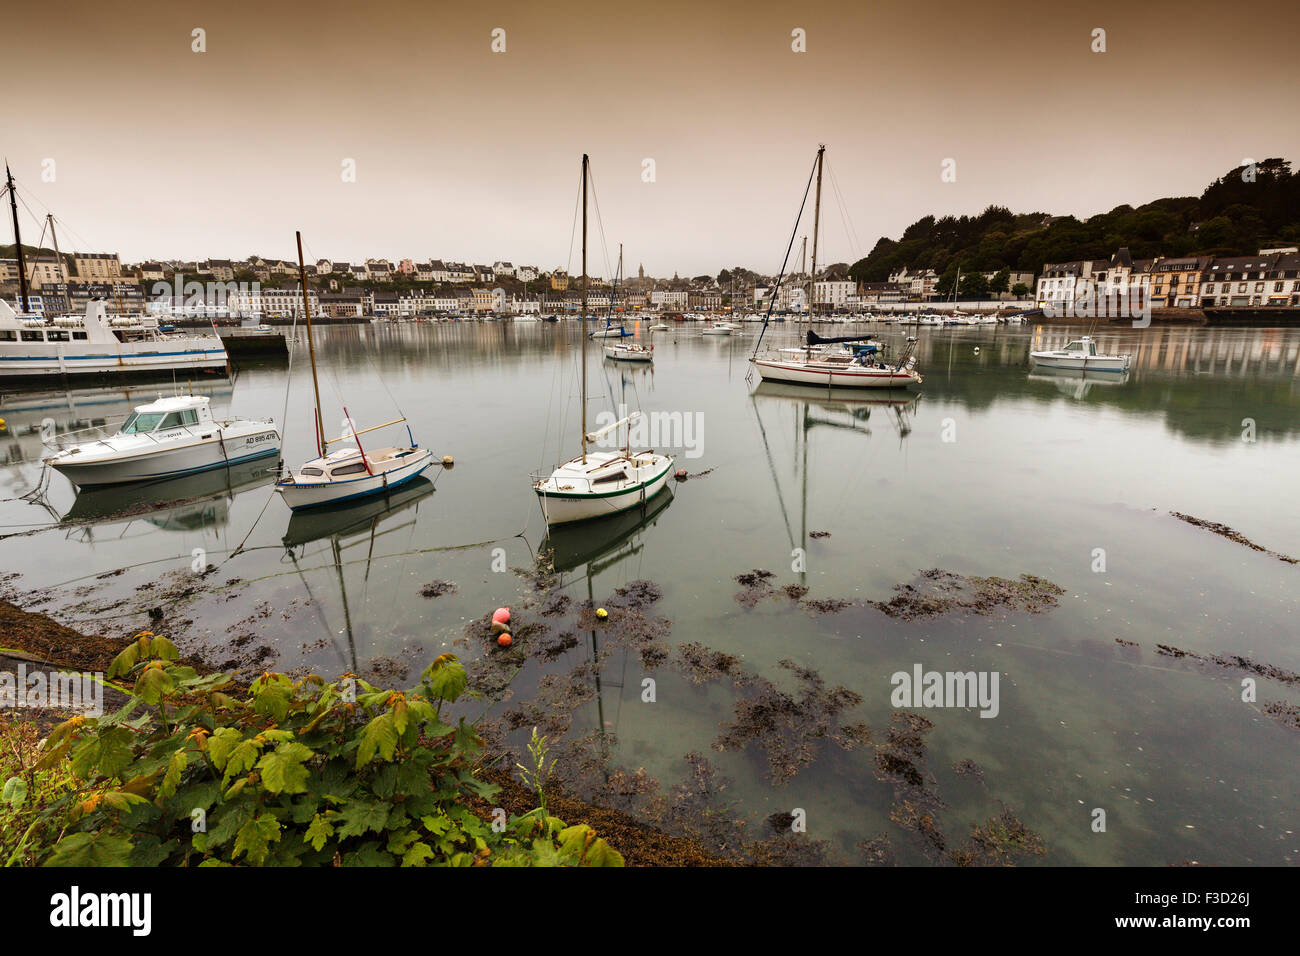 Audierne port Finistere French Brittany France Europe - Stock Image